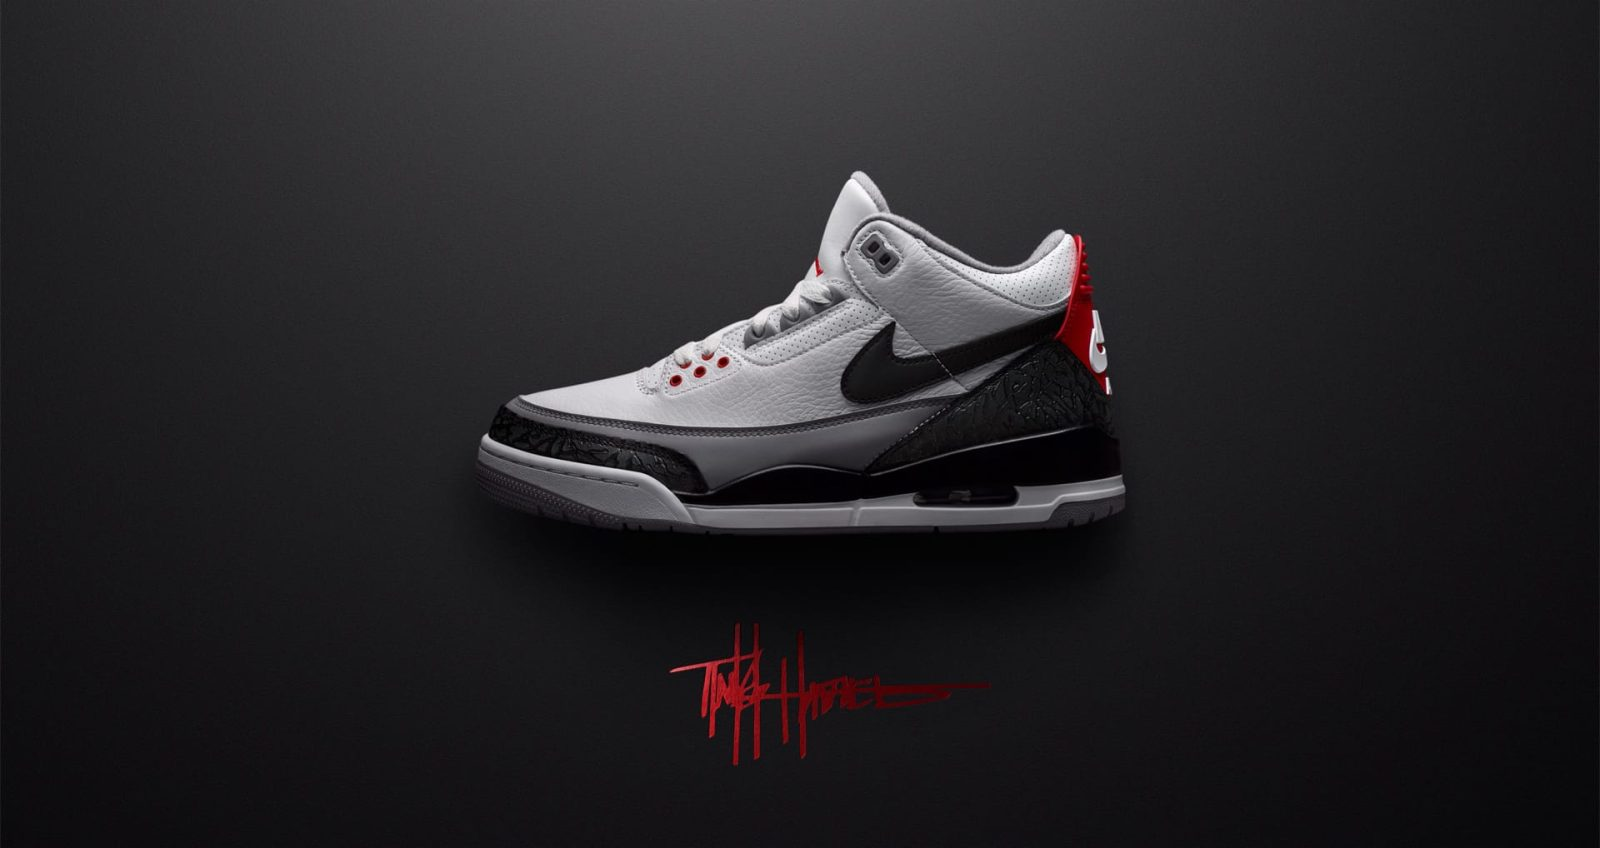 a783b1c09f5f22 Nike continues Air Jordan III push with Tinker Hatfield inspired designs